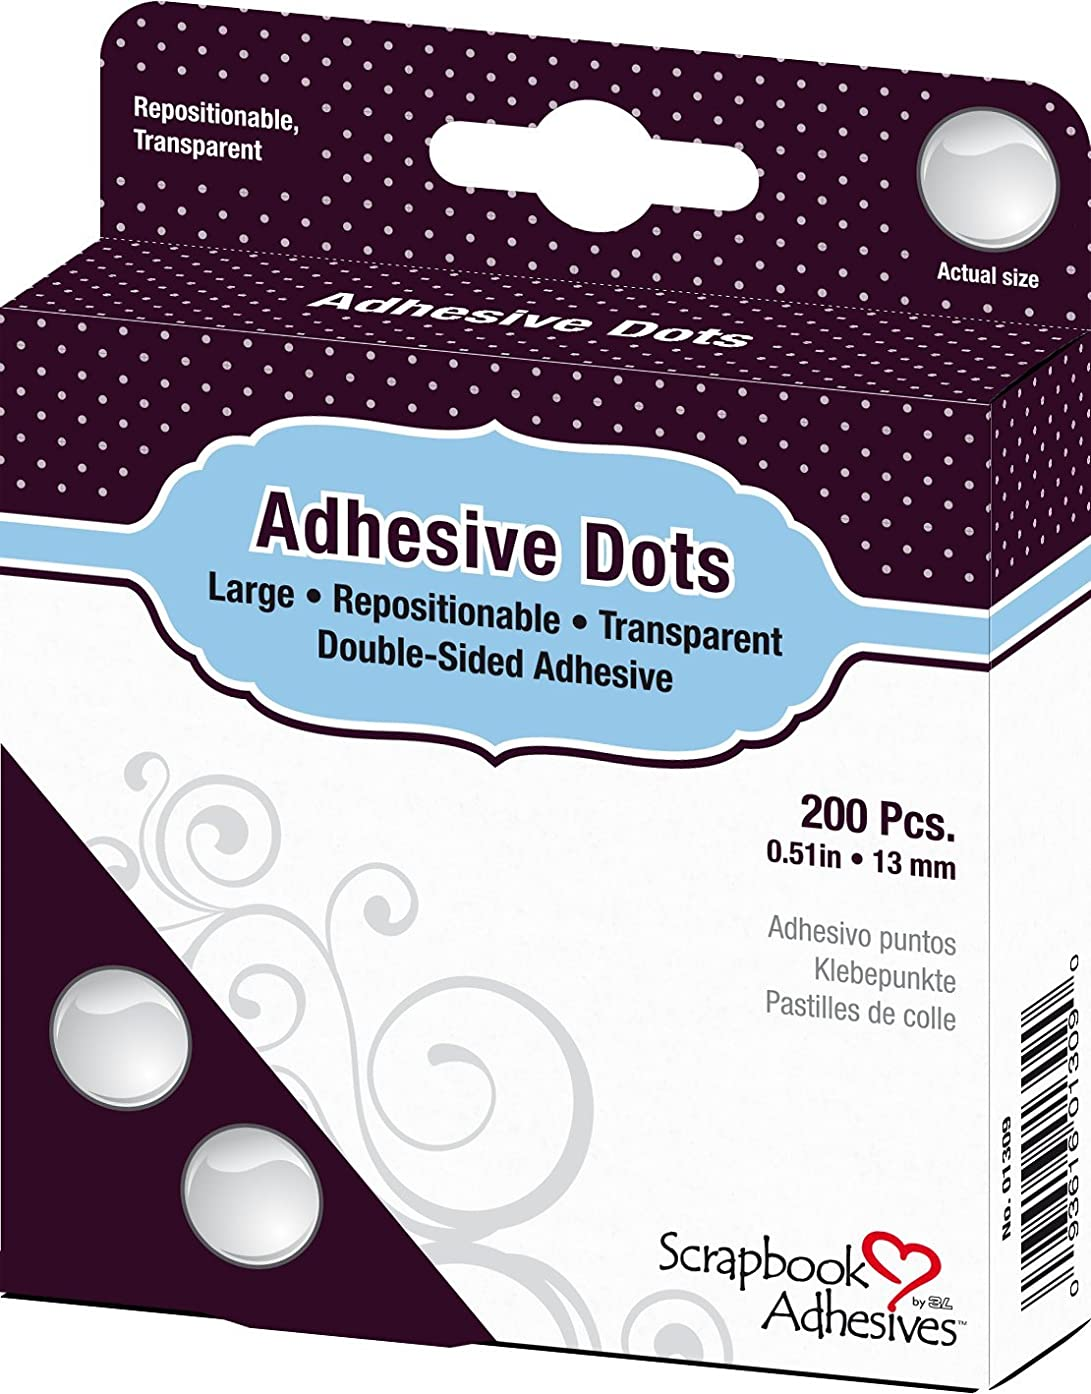 SCRAPBOOK ADHESIVES BY 3L Adhesive Repositionable Large Dots